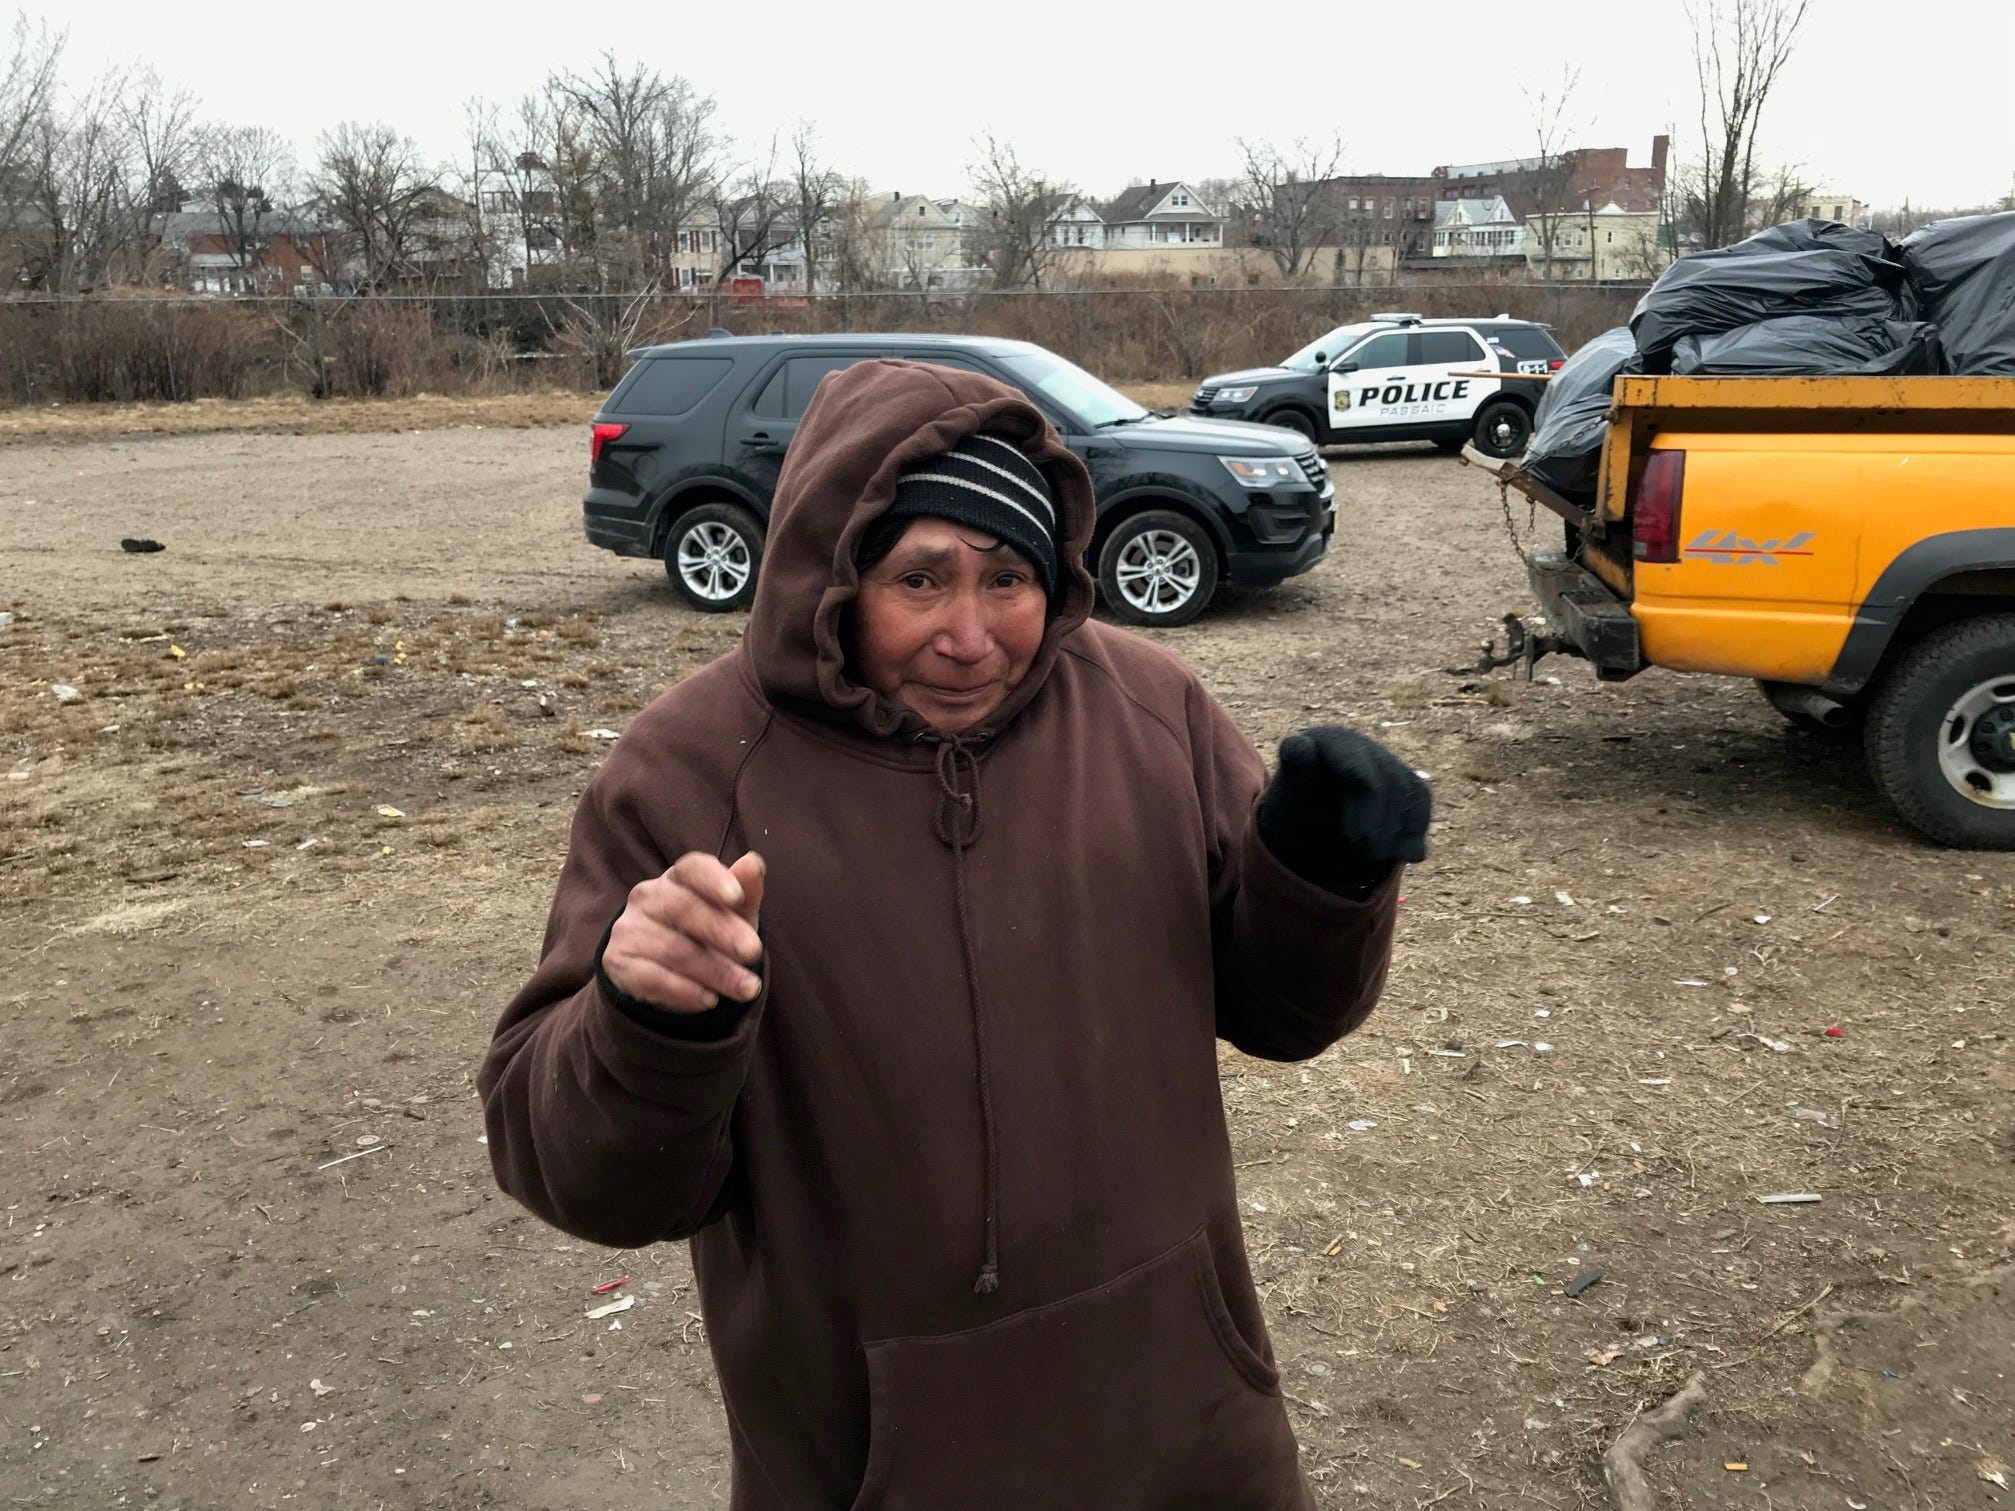 """Salvador Rodriguez, known as """"The Shrimp"""" because of the """"color he turns when he drinks vodka"""" says he is the oldest person living in the homeless encampment on the section of city known as Dundee Island. He says he has a drinking problem which he  hopes to kick on day. Concerning the cold and living outdoors,"""" when talking about his living conditions, broken down and wept """"I'm tired."""""""